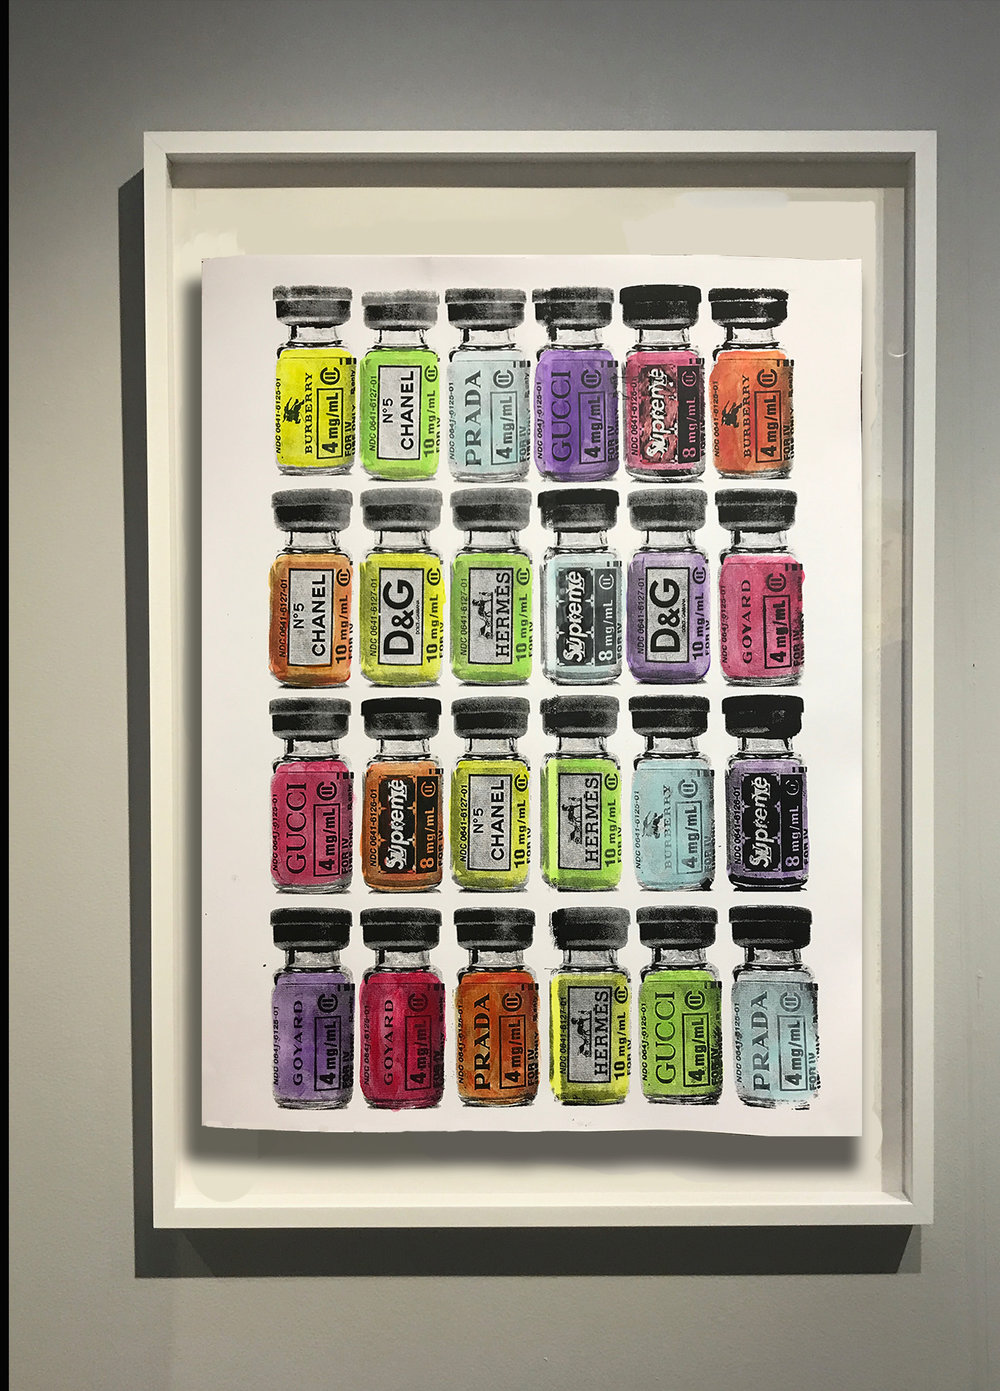 Designer Vaccines - 20 x 26 |Hand painted Silkscreen on Archival Paper May 18 | 1/1 Buyer Inquiry